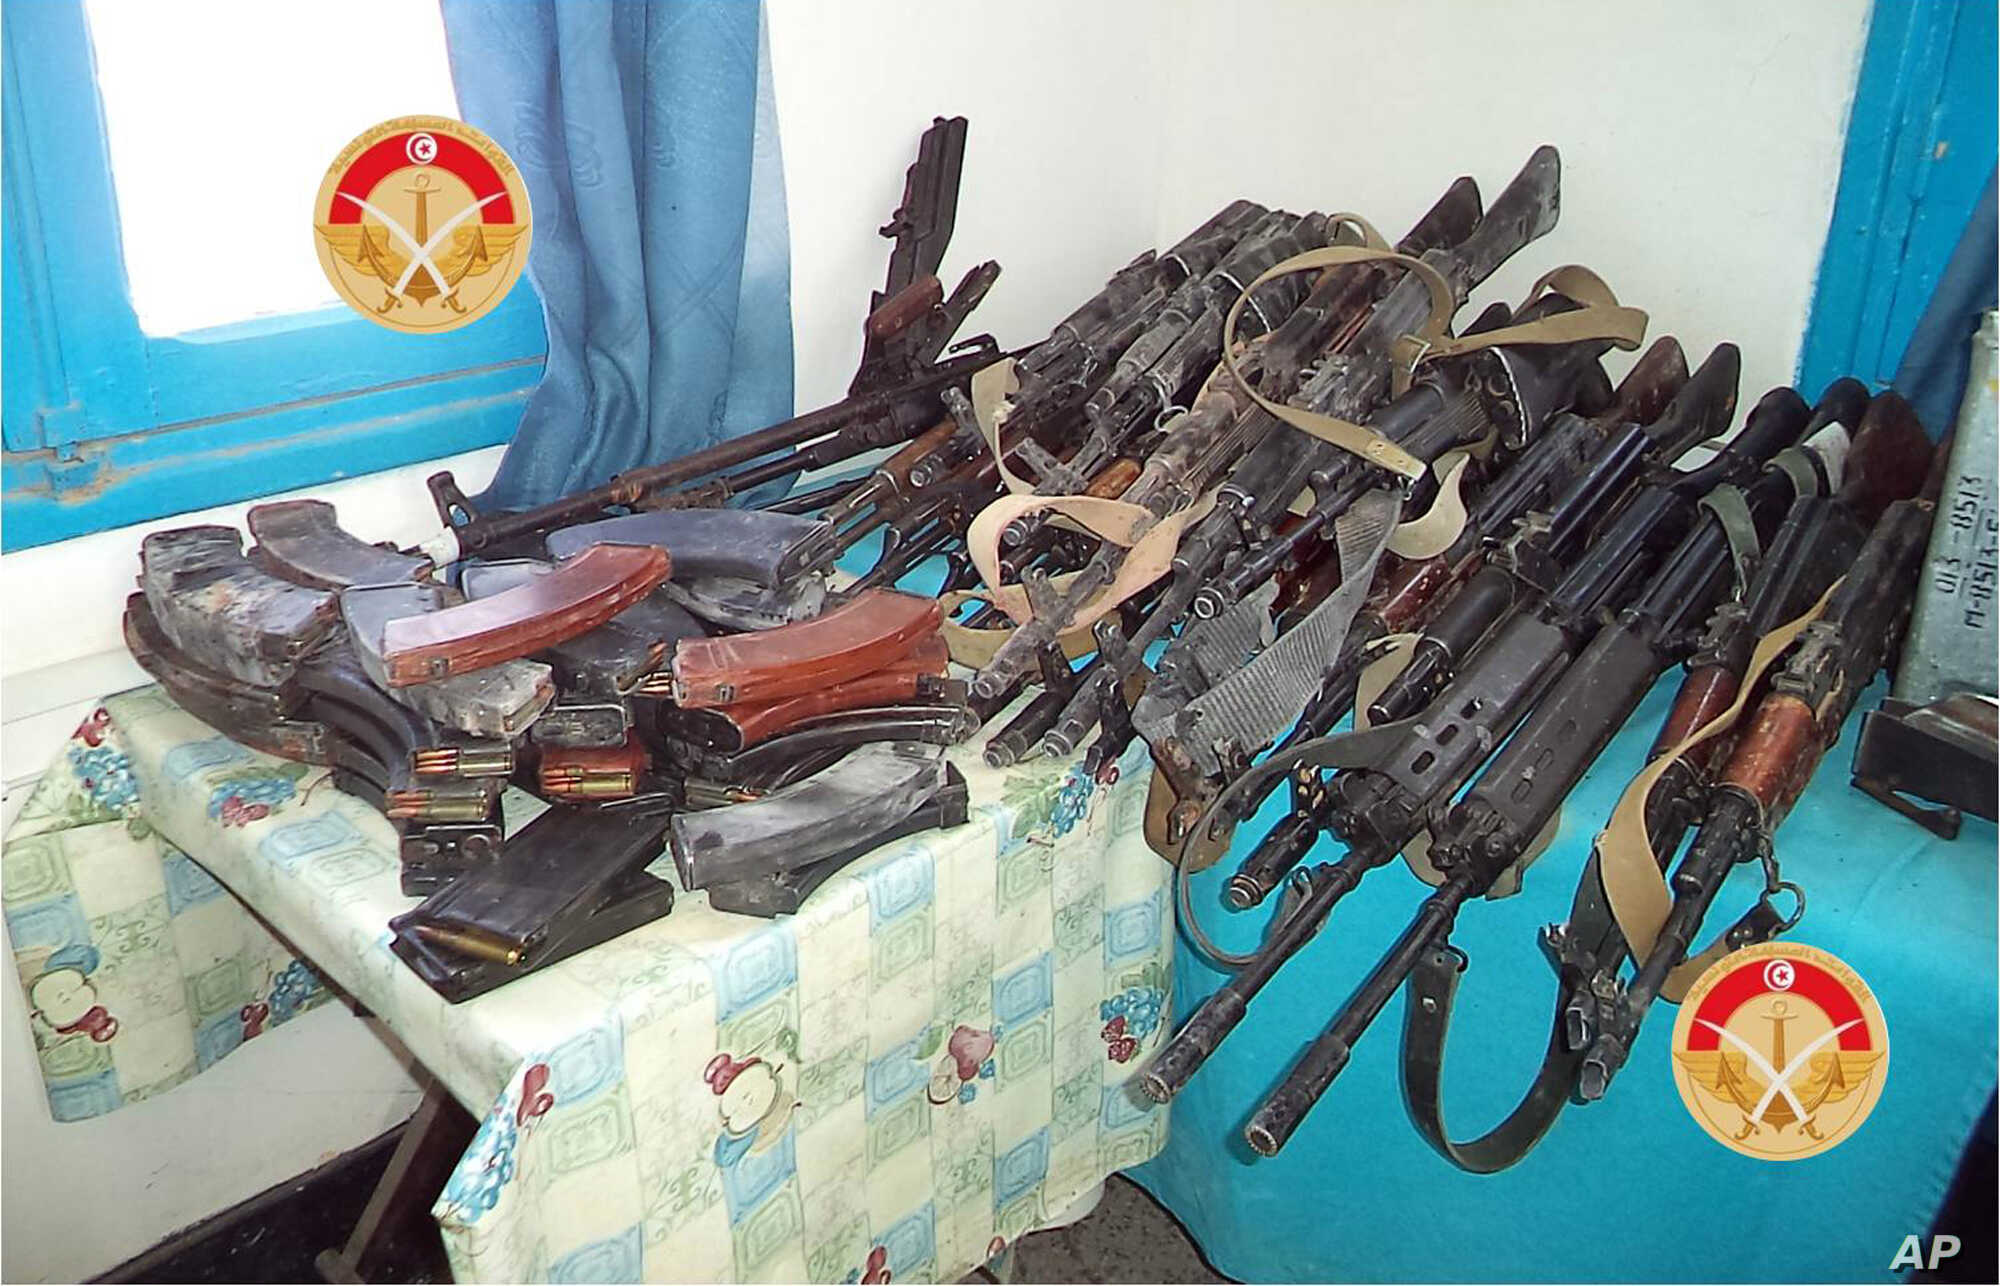 FILE - This photo taken Monday, Match 7, 2016 and provided by the Tunisian Defense Minister on Tuesday, March 8, 2016 shows weapons seized by Tunisian forces from militants in the city of Ben Guerdane, southern Tunisia. (Tunisian Defense Ministry via...